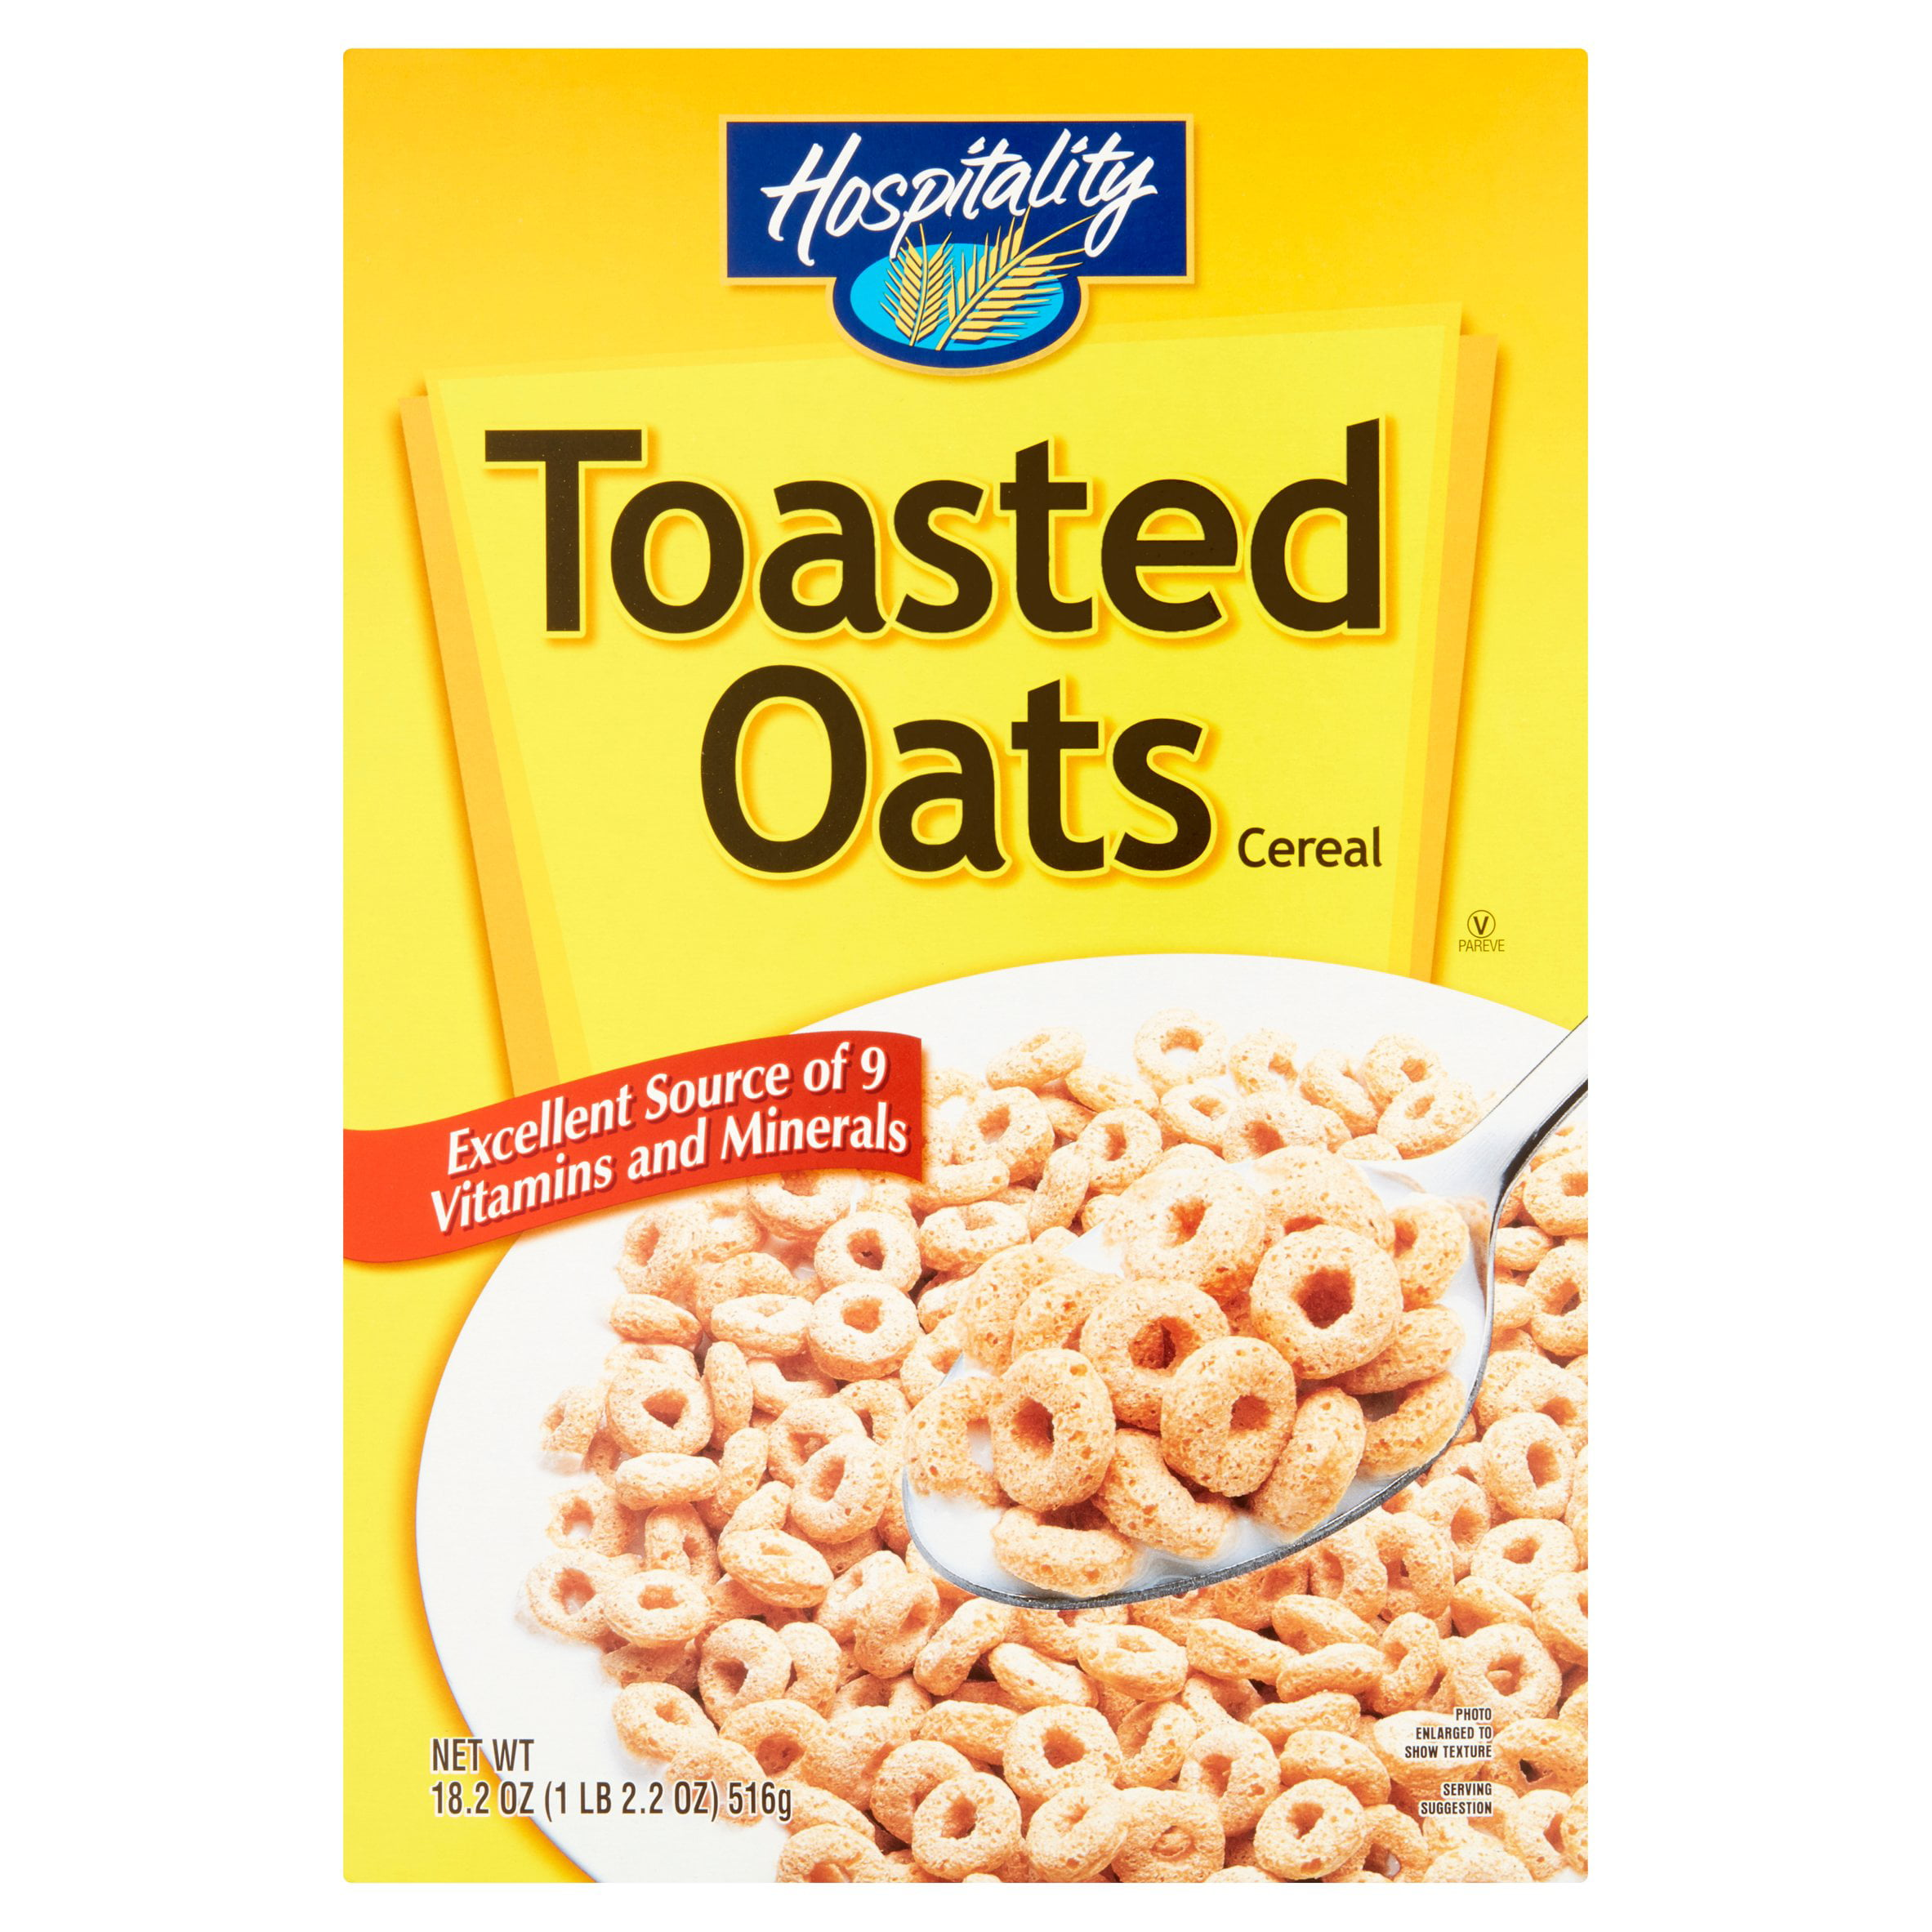 Hospitality Toasted Oats Cereal, 18.2 Oz